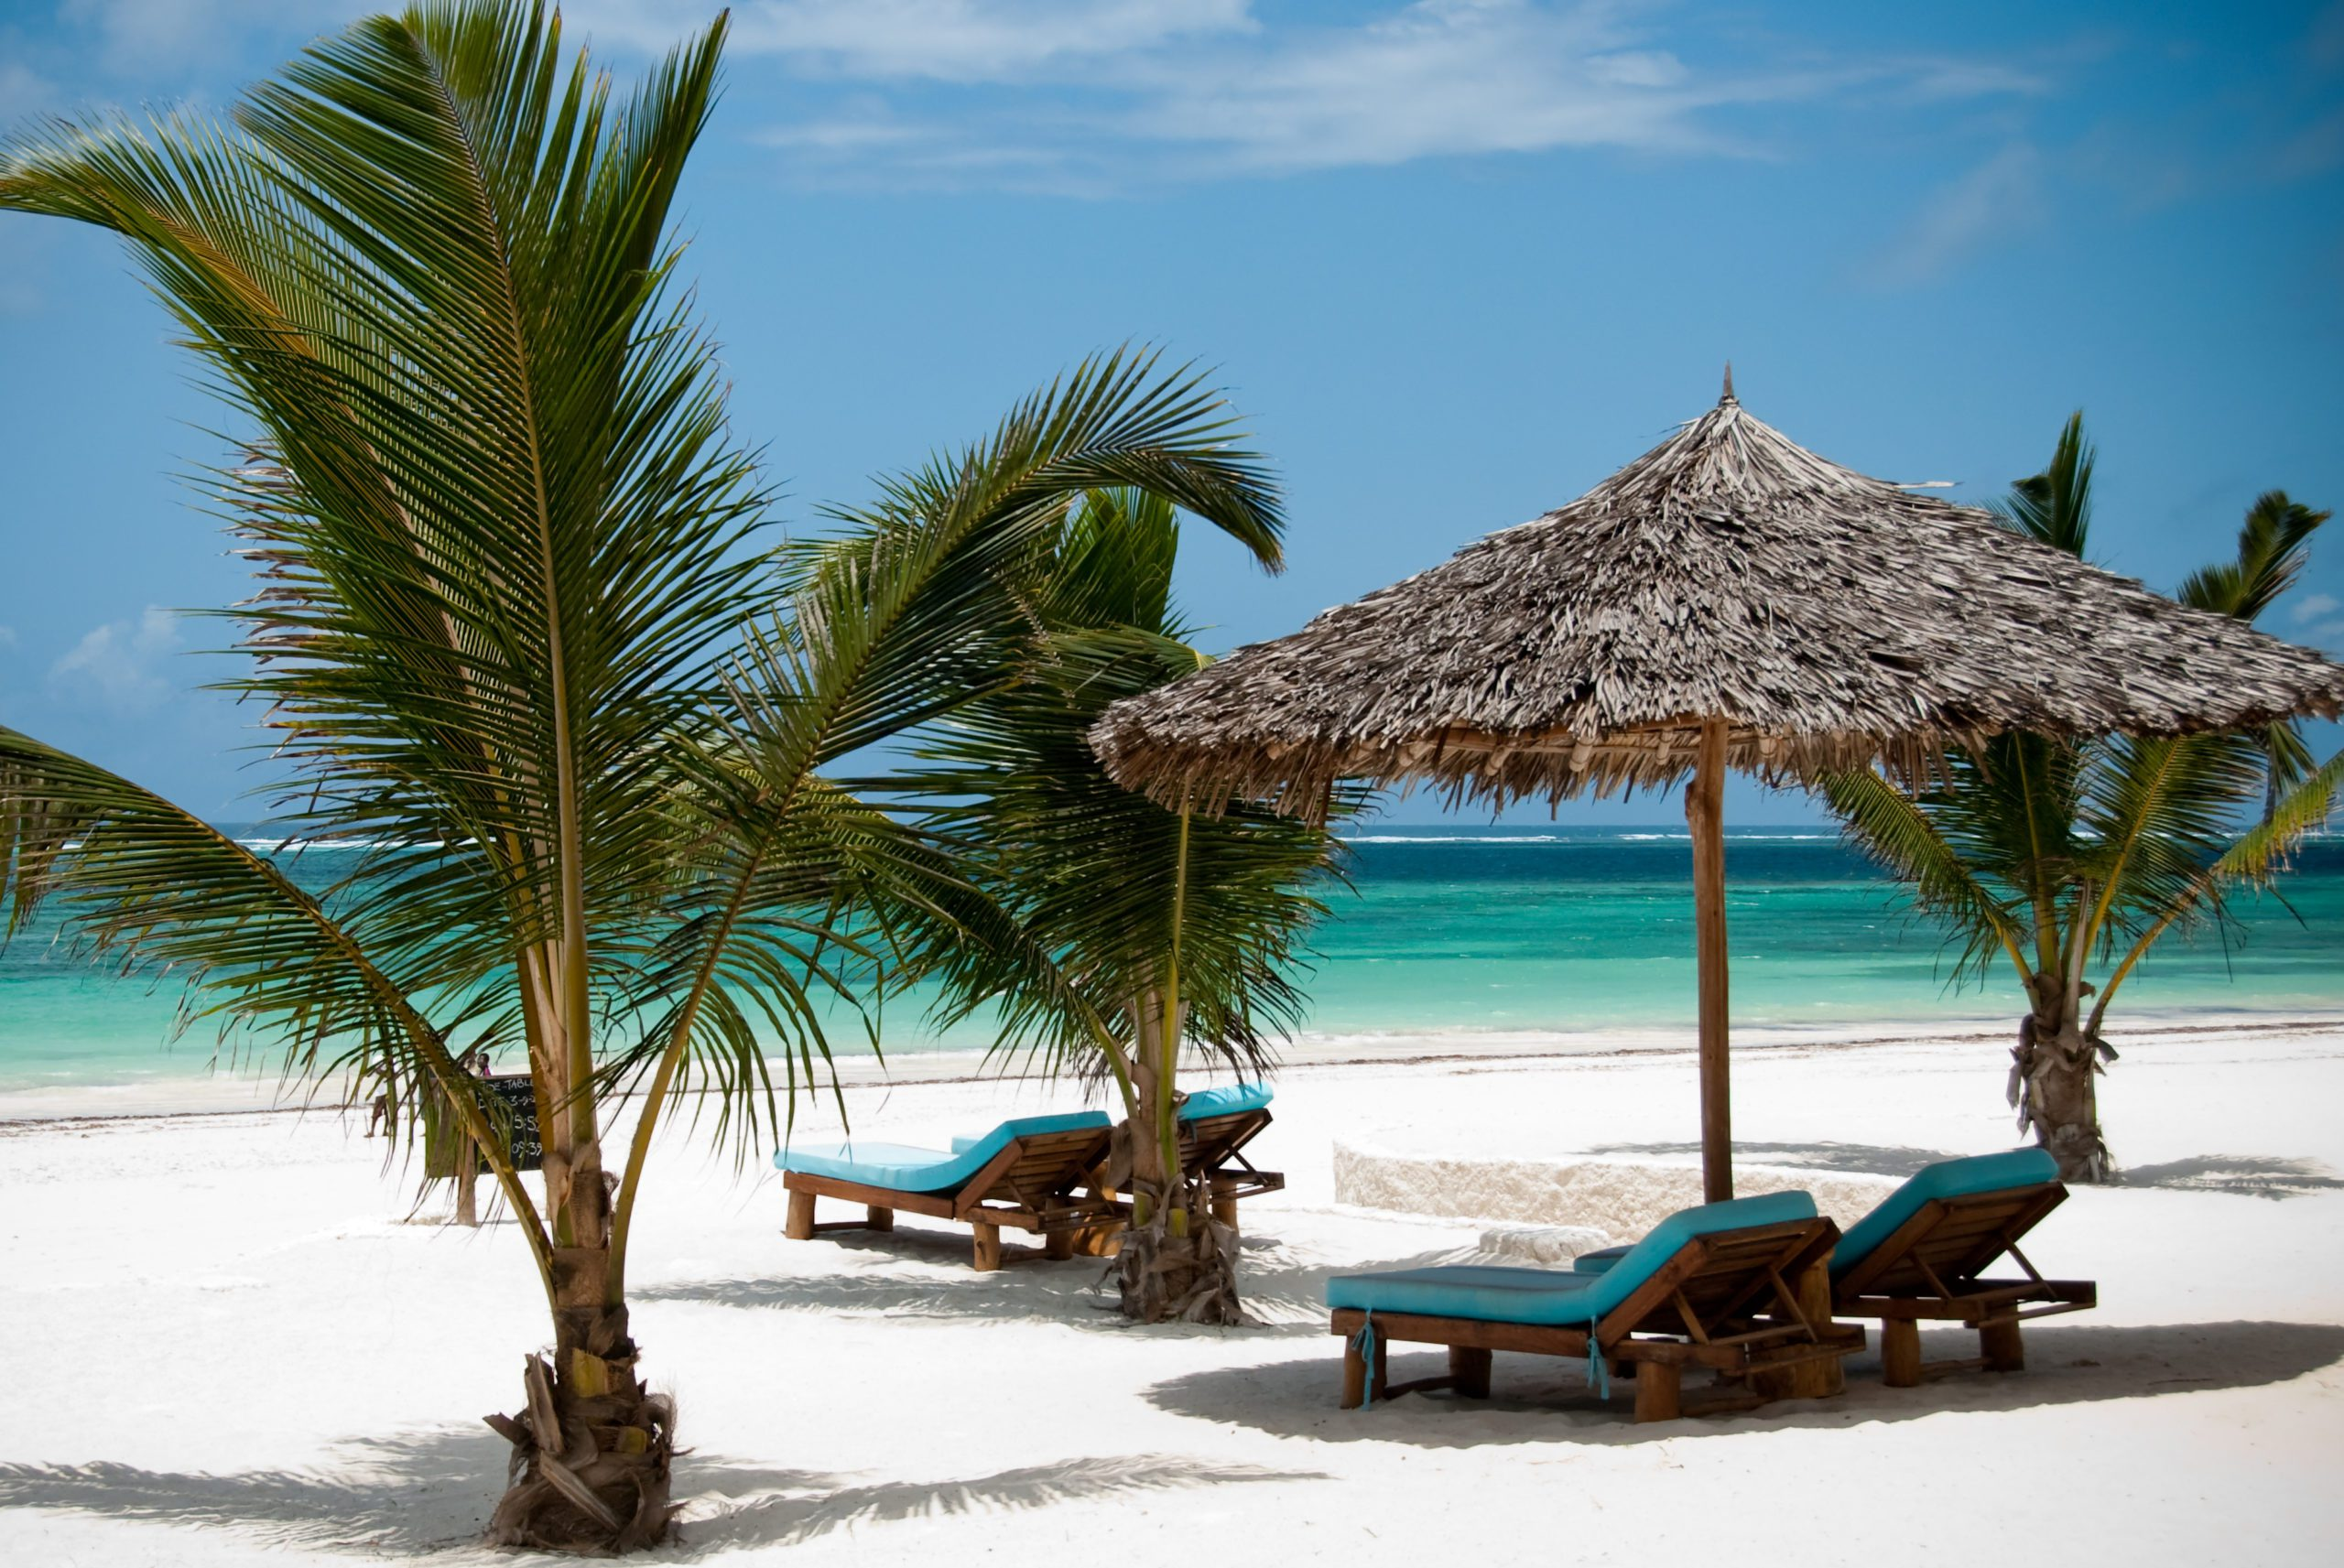 white sandy beaches with loungers, palm umbrellas and palm trees